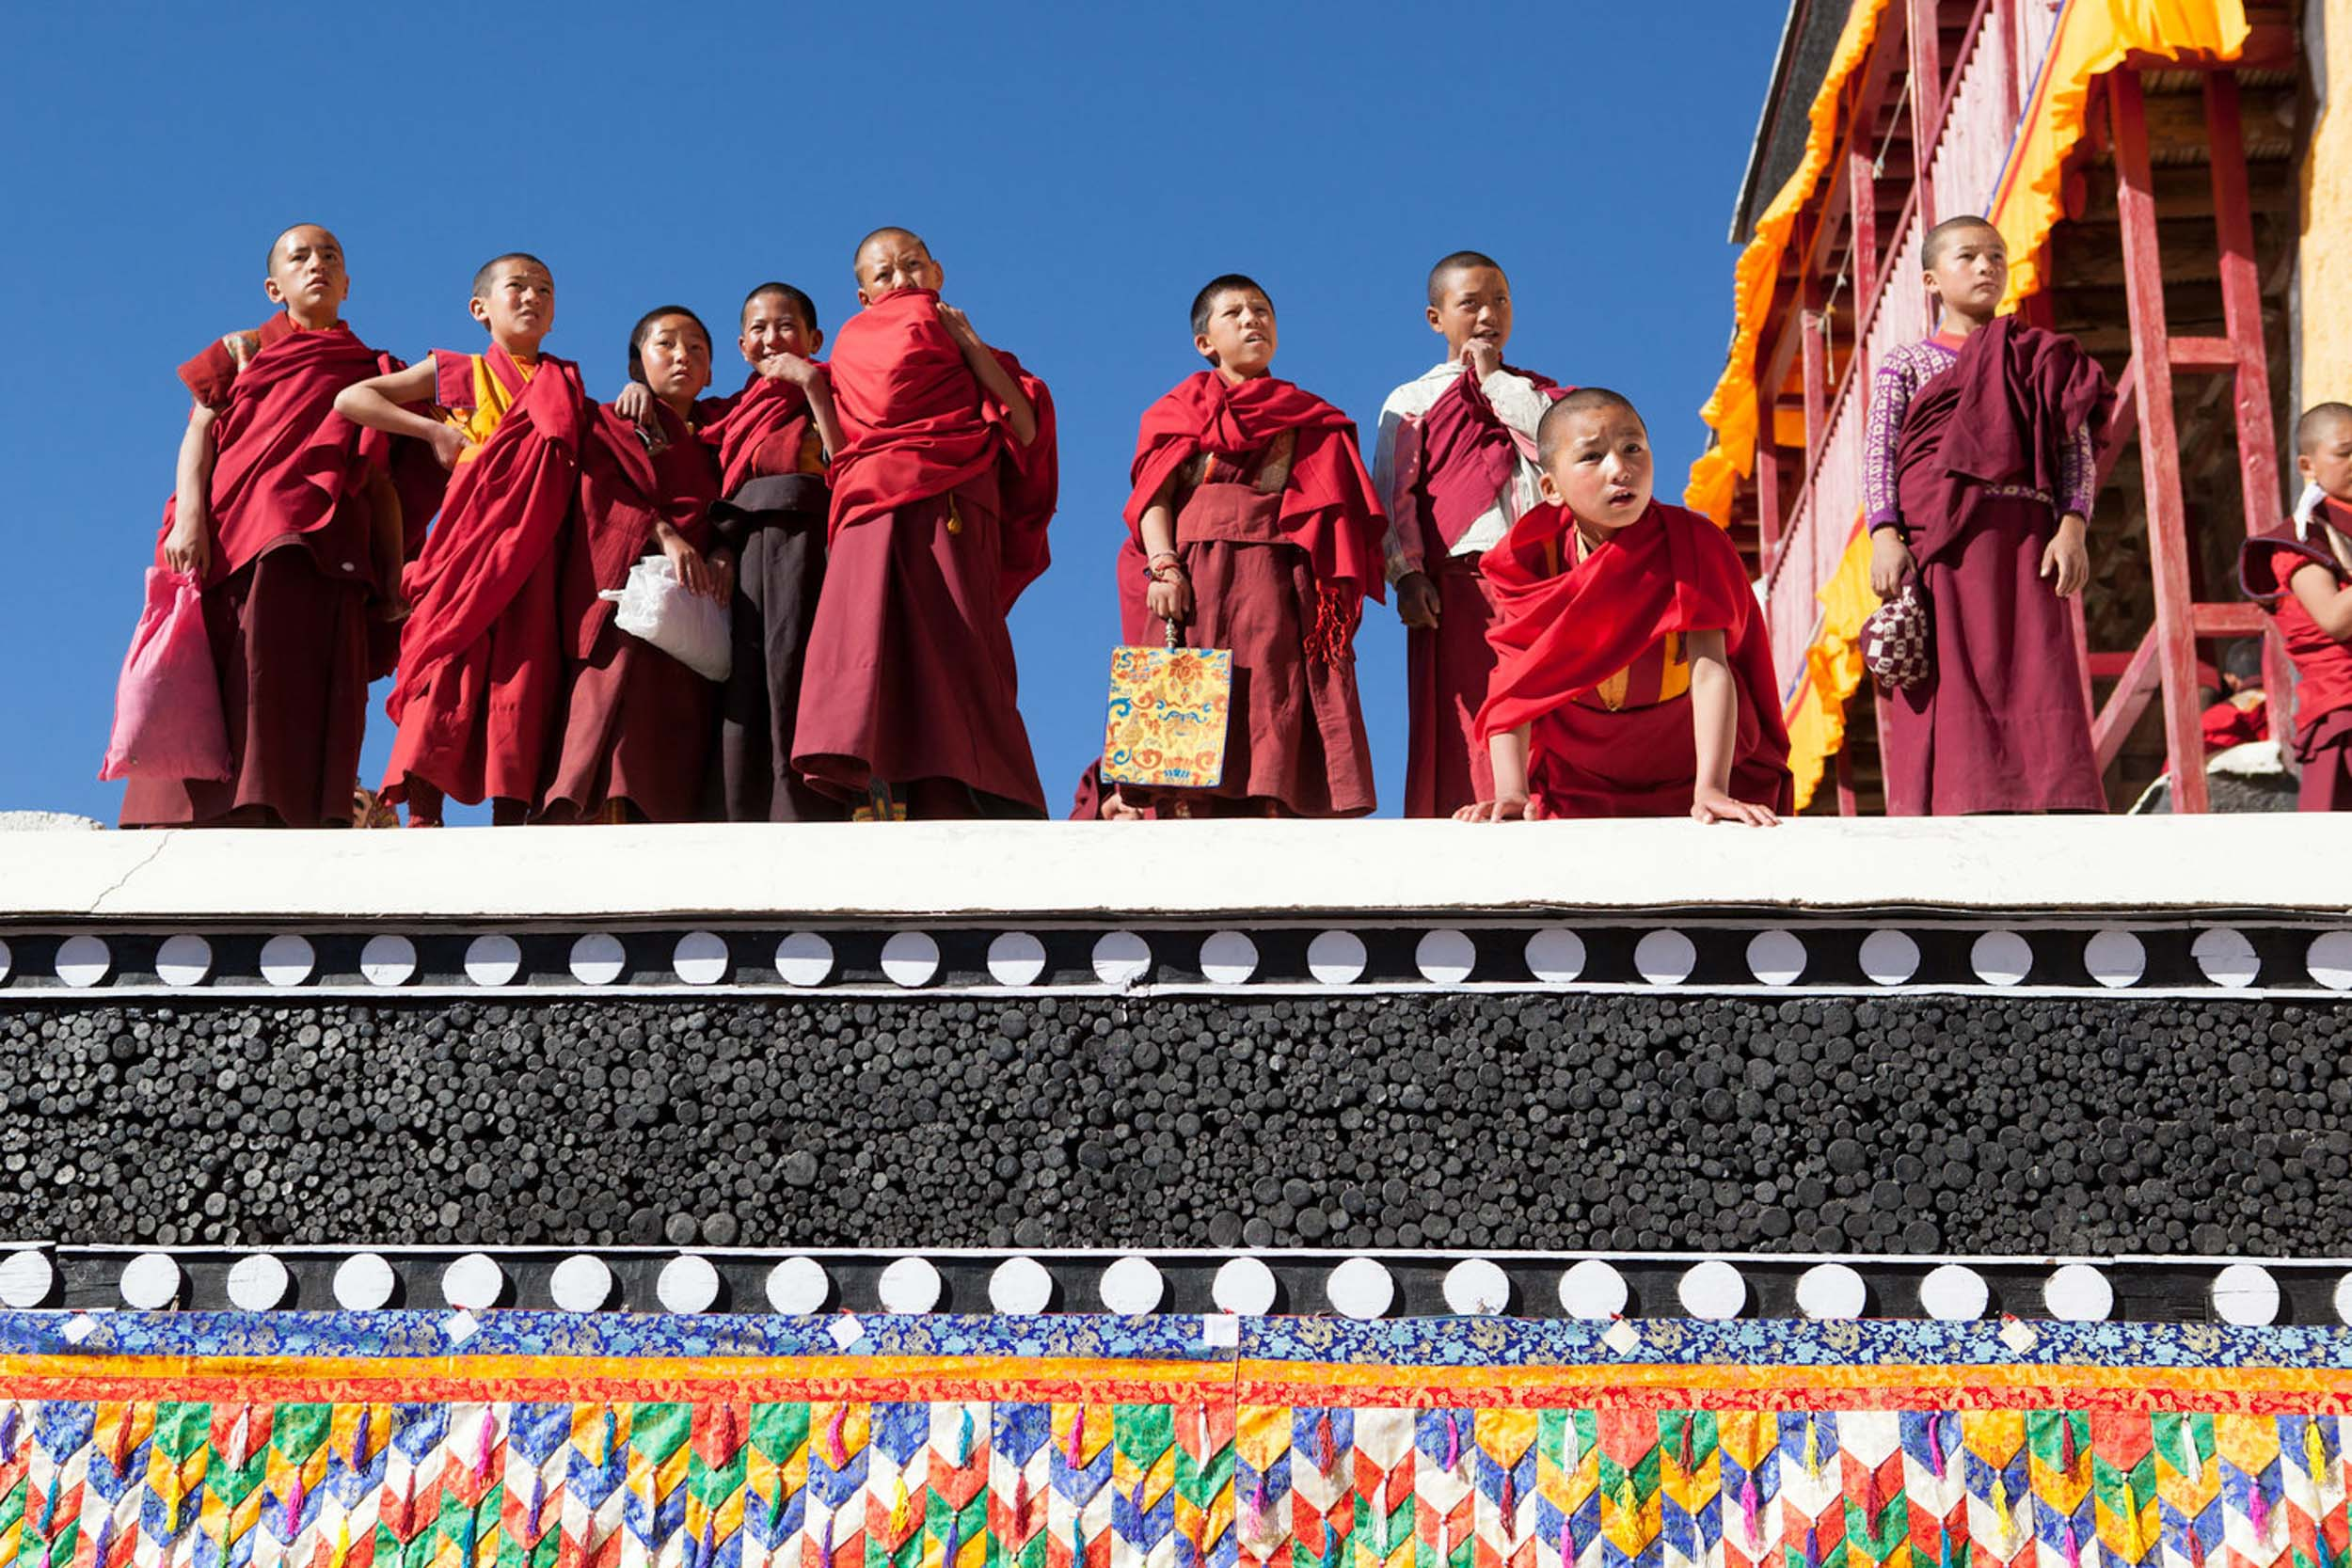 Travel-India-Ladakh-Leh-Thiksey-Buddhist-Monk-Kids-Jason-Bax